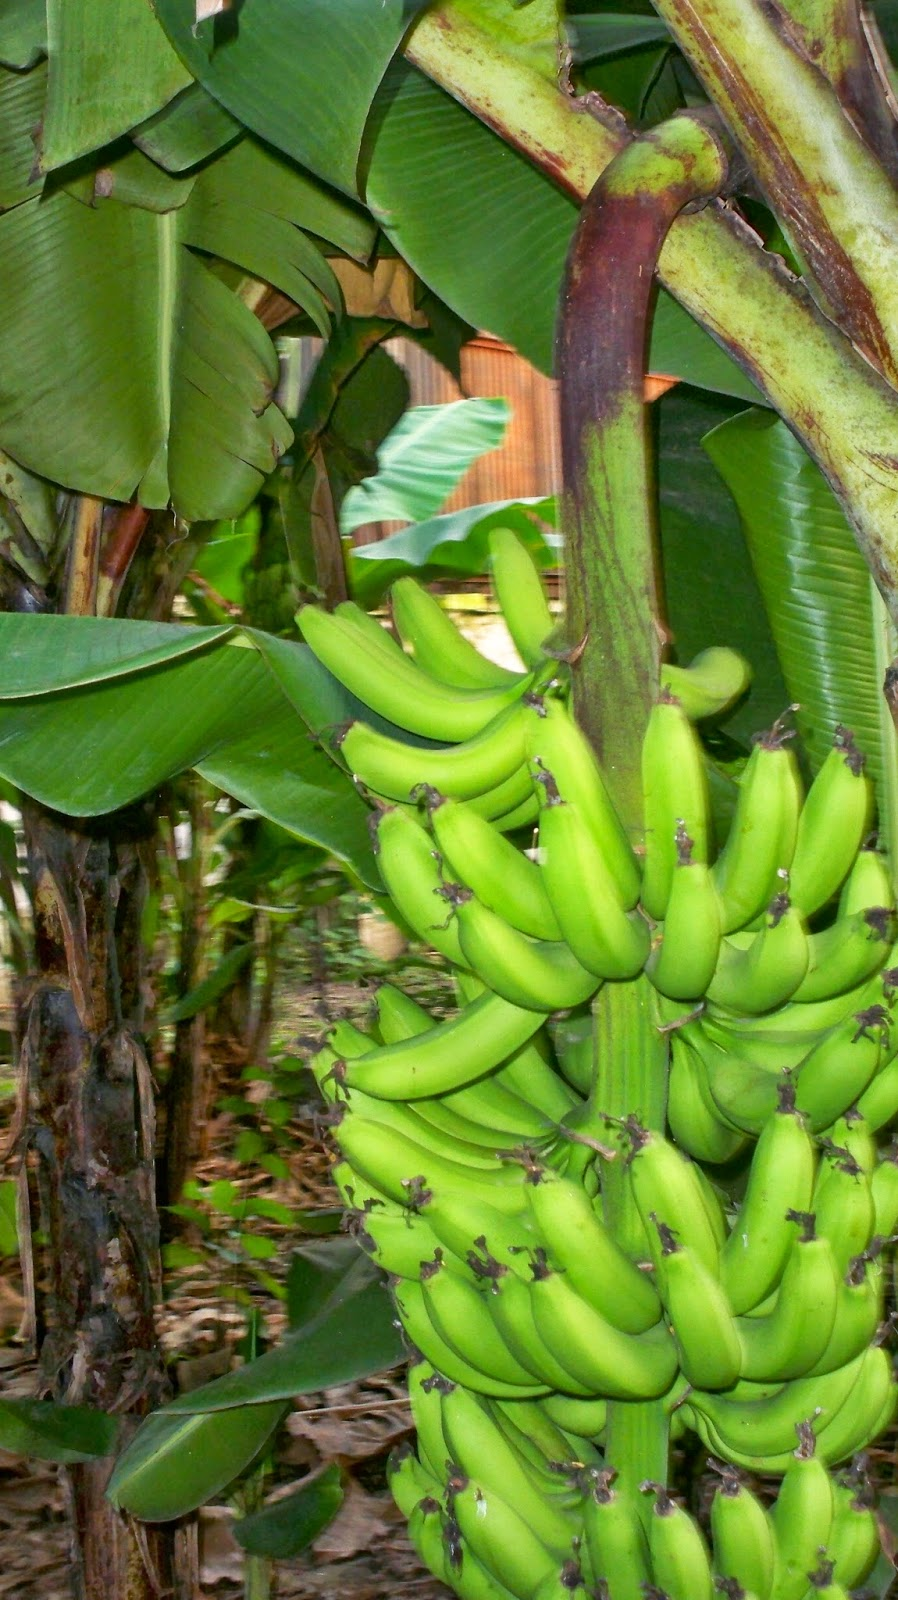 Banana trees growing and bearing fruits at Mulvany House, Kolkata.